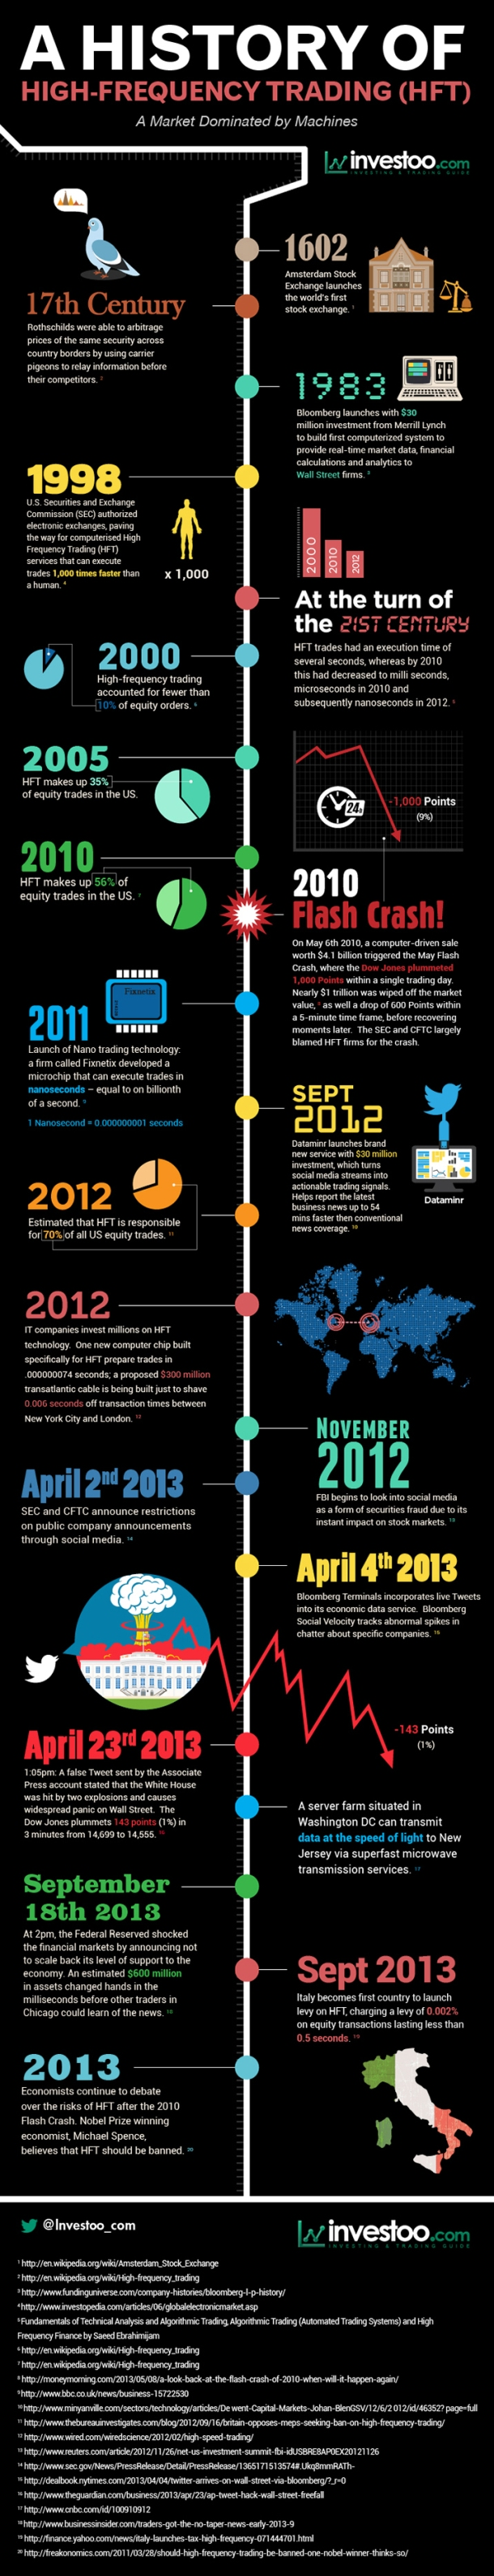 High Frequency Trading Infographic